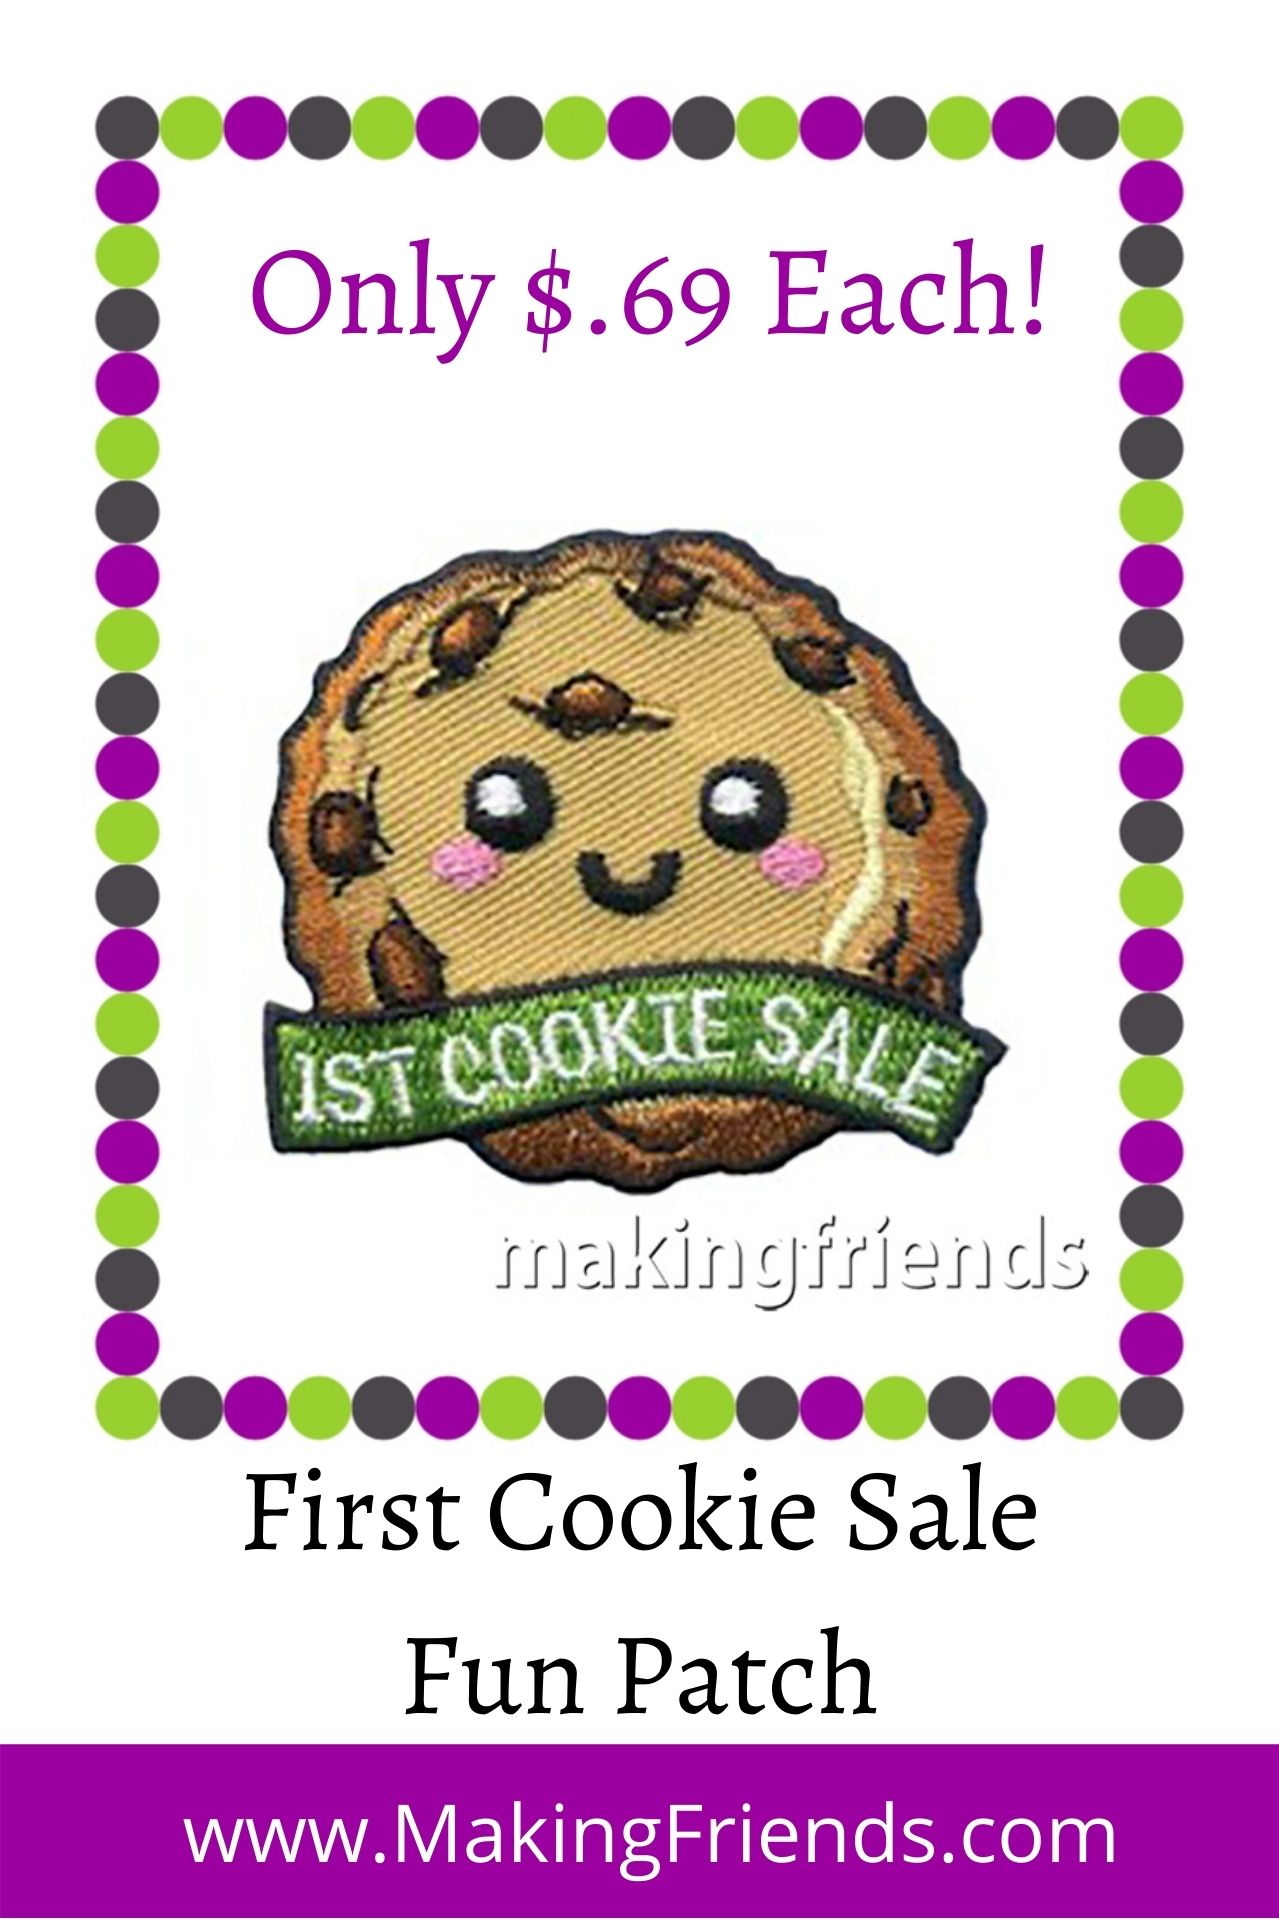 A Girl Scout's first cookie sale is so special and fun! Celebrate with this cute patch! $.69 each, free shipping available! #makingfriends #1stcookiesale #firstcookiesale #girlscouts #girlscoutcookies #cookiesales #gscookies #thinmints #samoas #desserts via @gsleader411